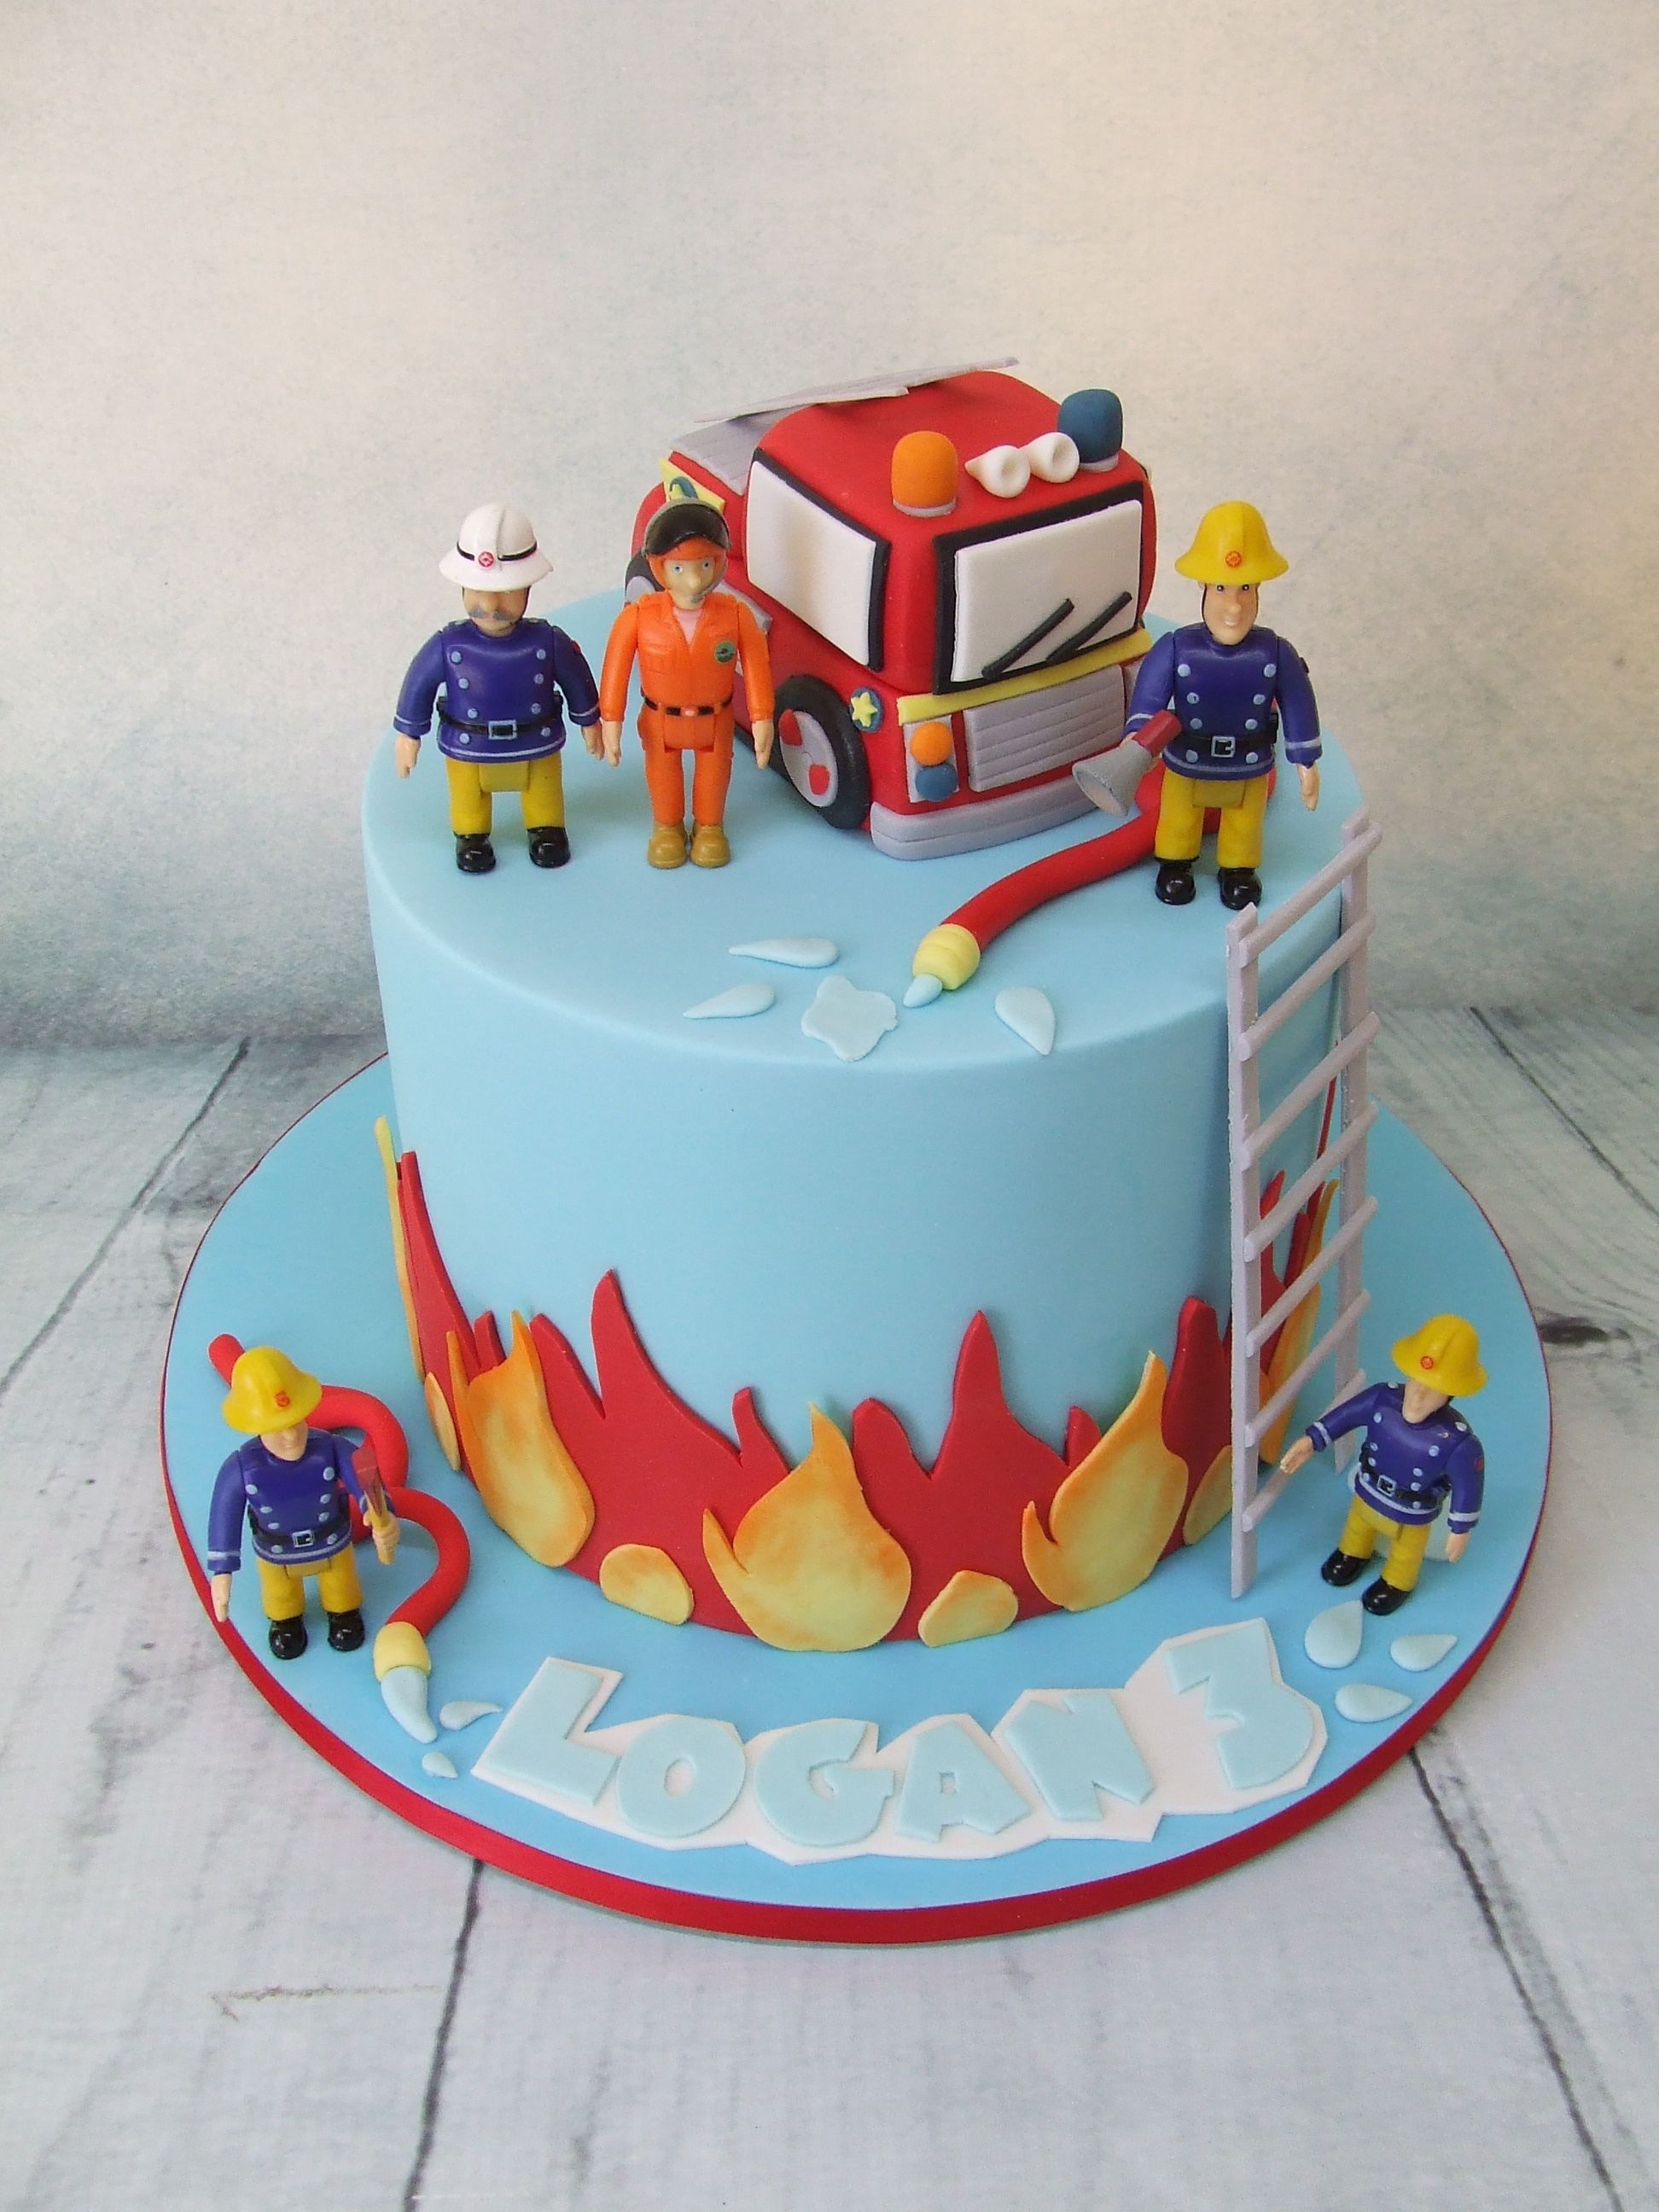 Awesome 21 Wonderful Image Of Fireman Birthday Cake With Images Funny Birthday Cards Online Alyptdamsfinfo